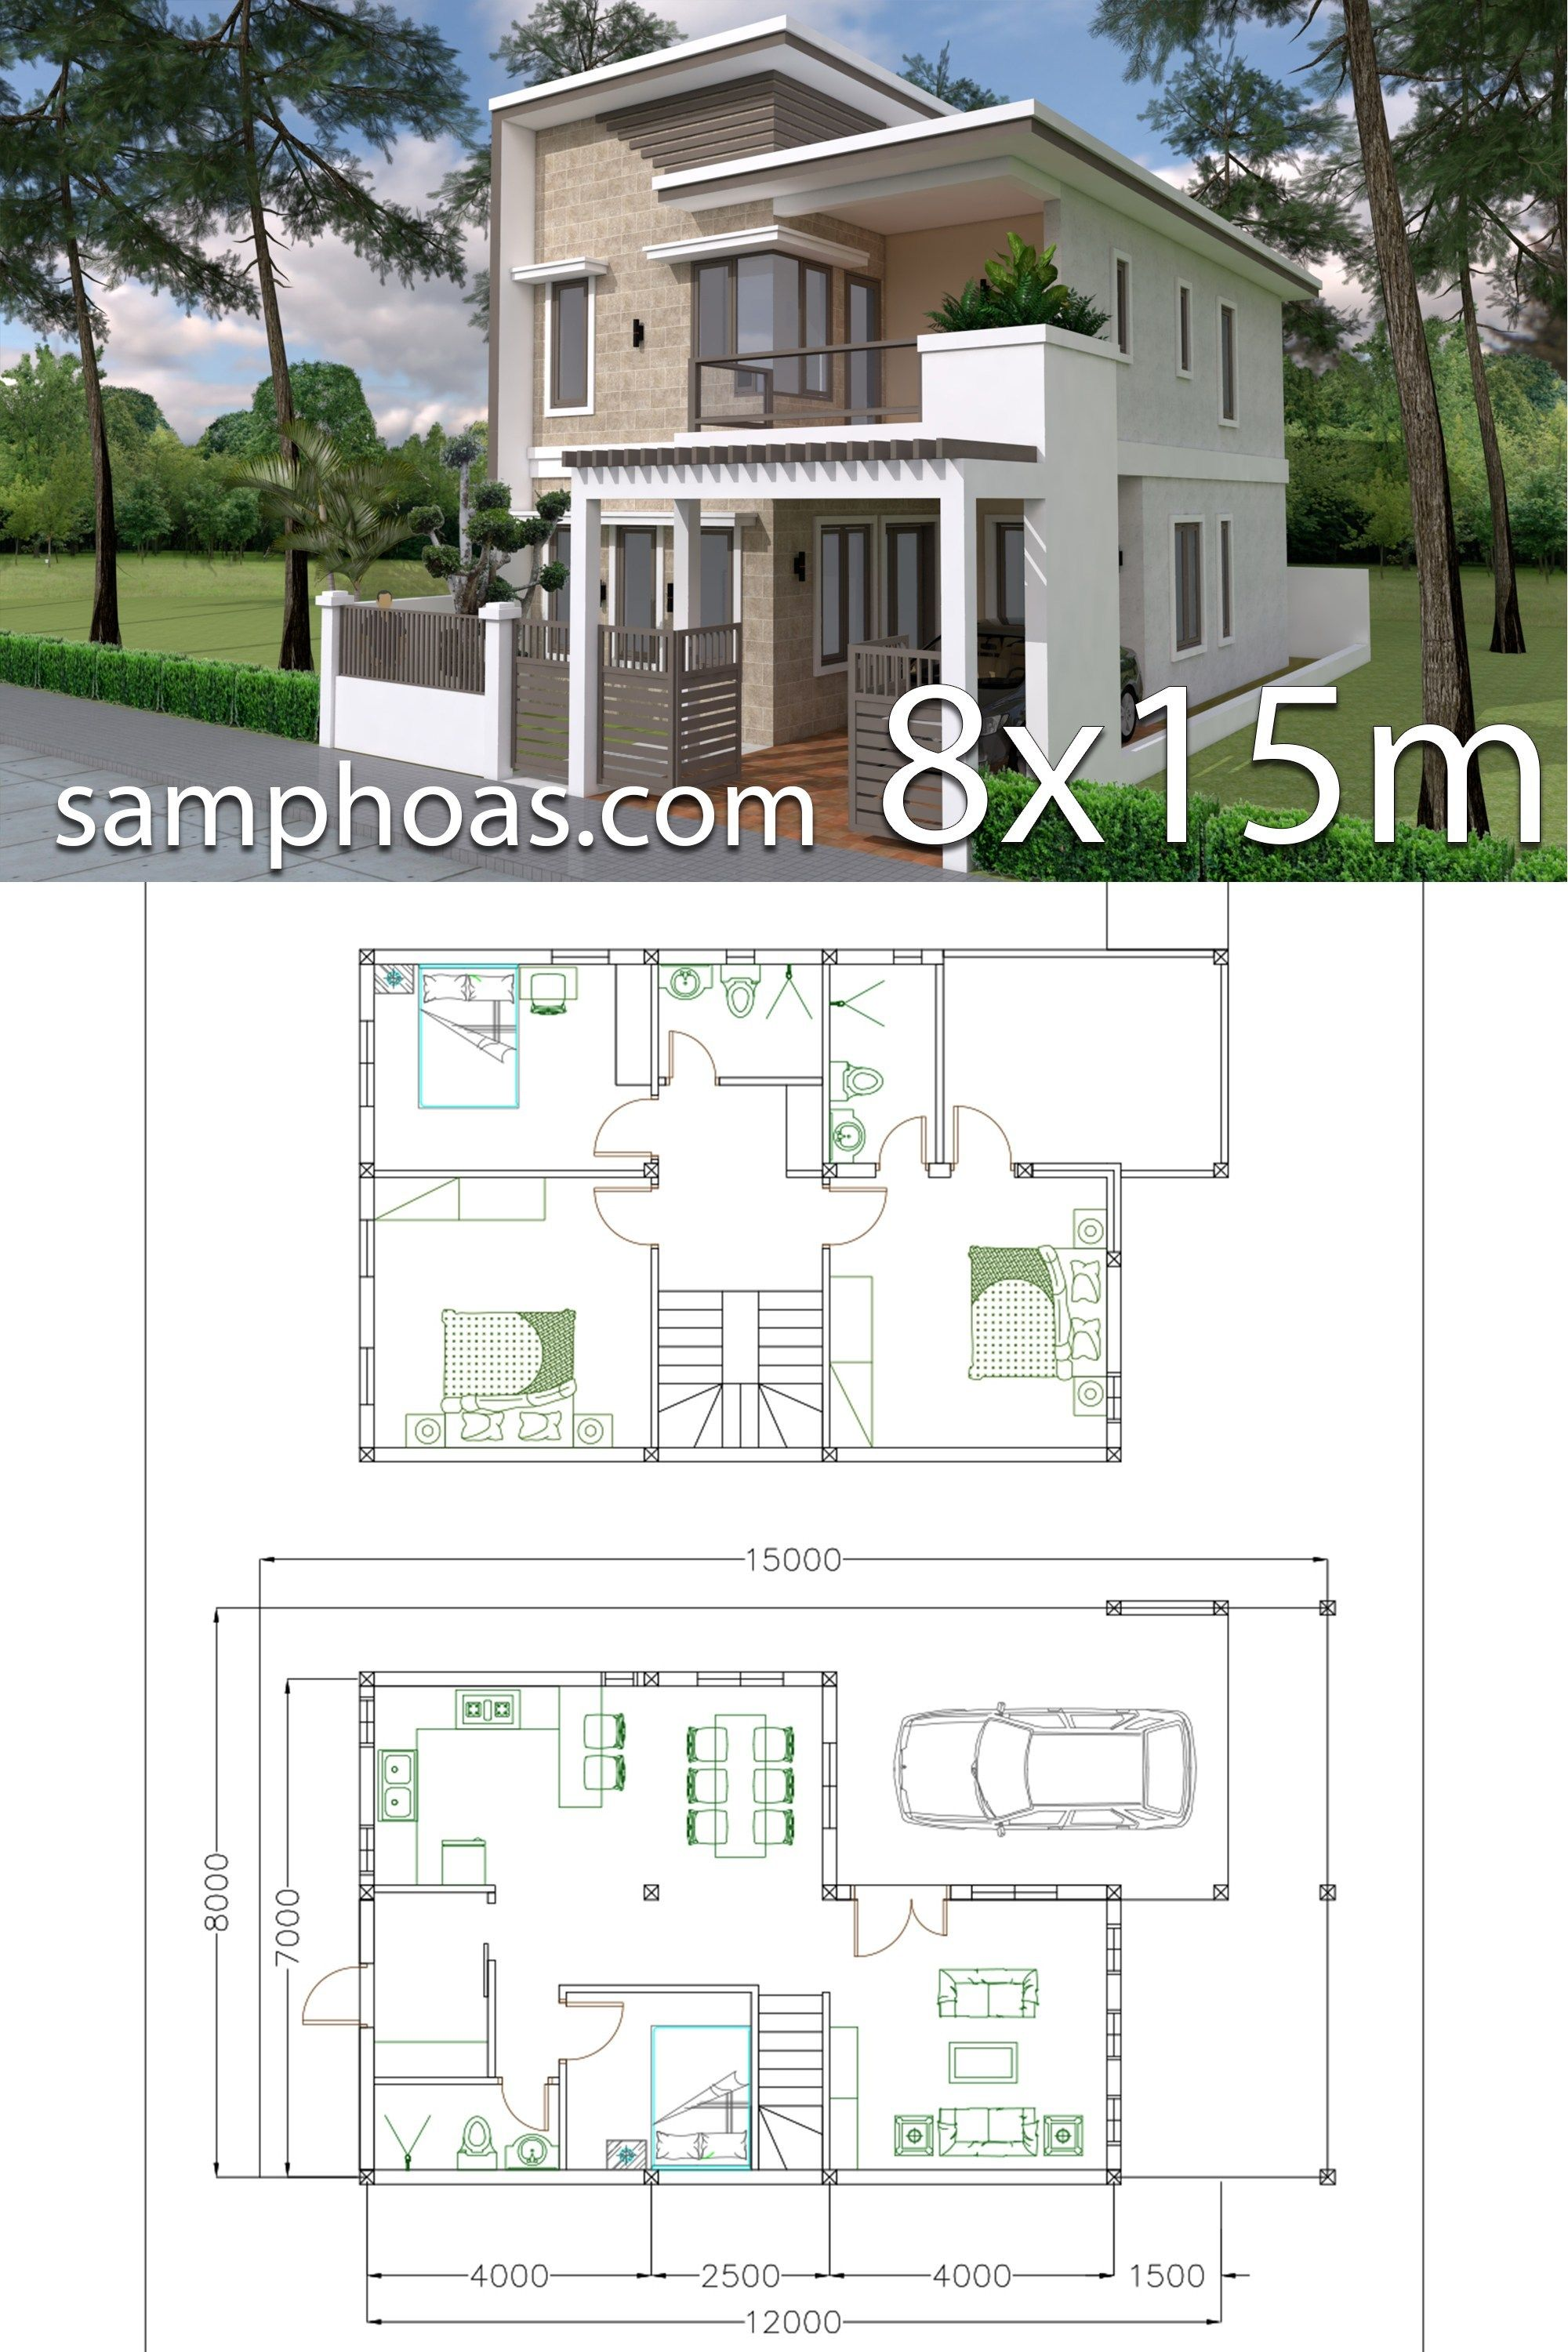 Home Design Plan 7x12m With 4 Bedrooms Plot 8 15 Samphoas Plan Model House Plan House Construction Plan House Layout Plans